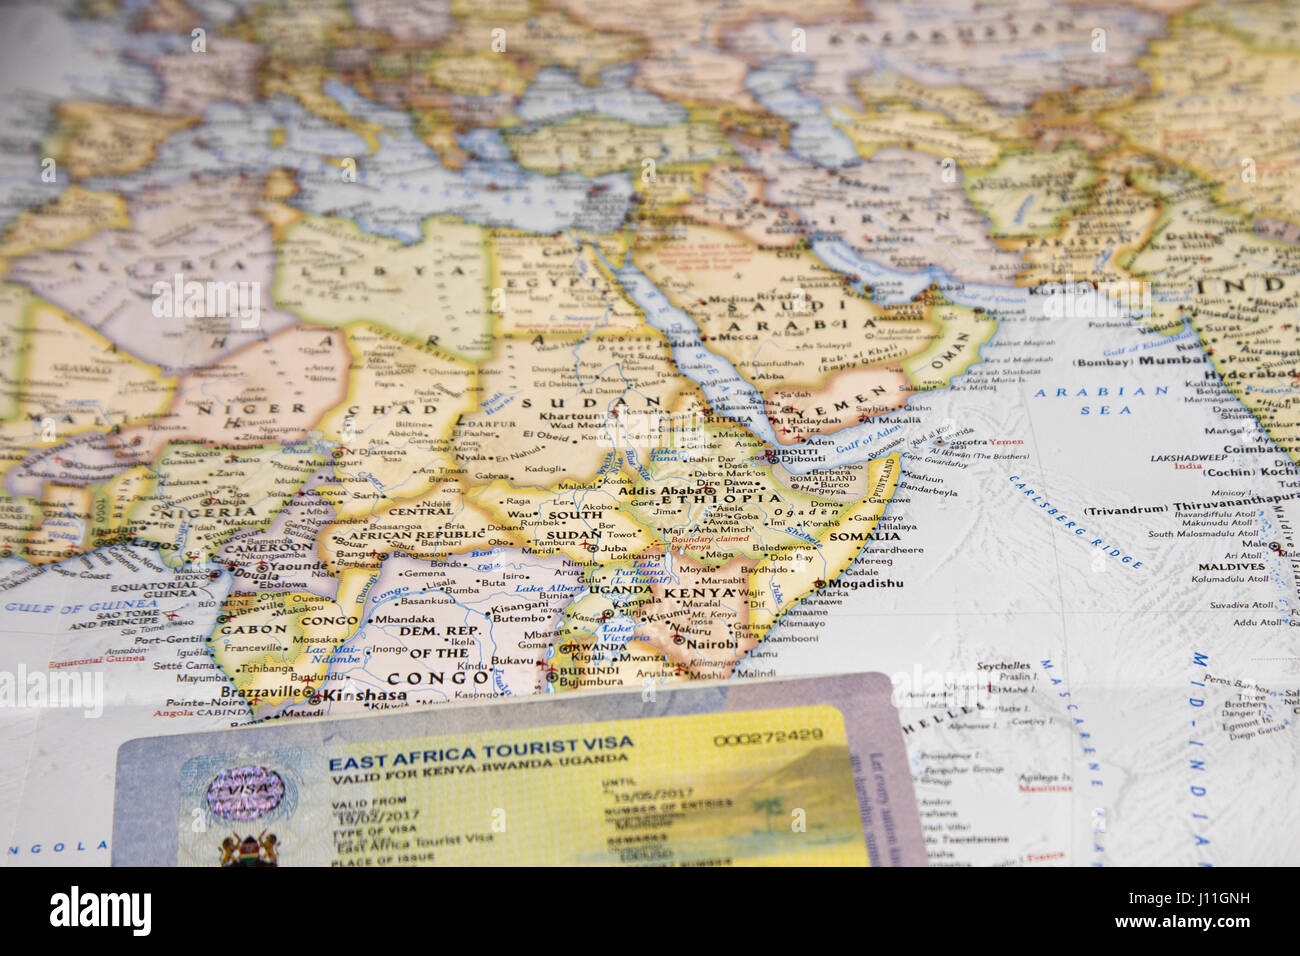 Map Of Africa With East Africa Tourist Visa For Entry Into Rwanda